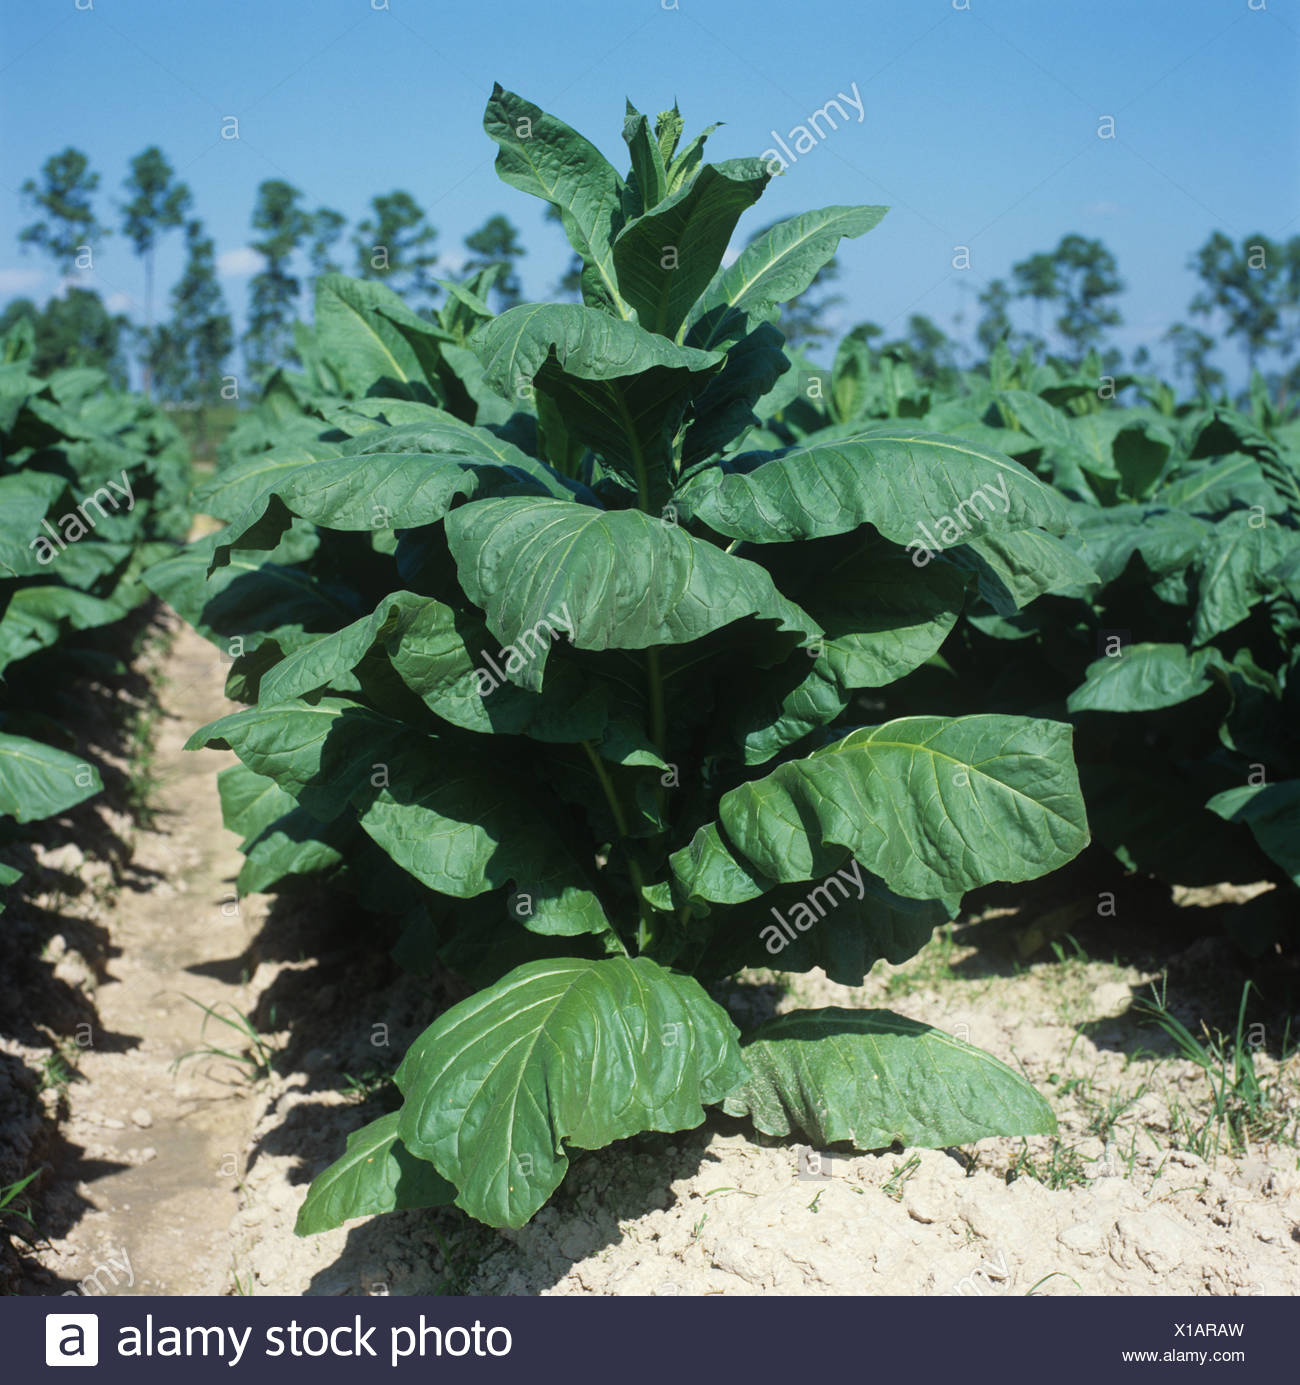 Large but immature tobacco plant in a crop Thailand - Stock Image